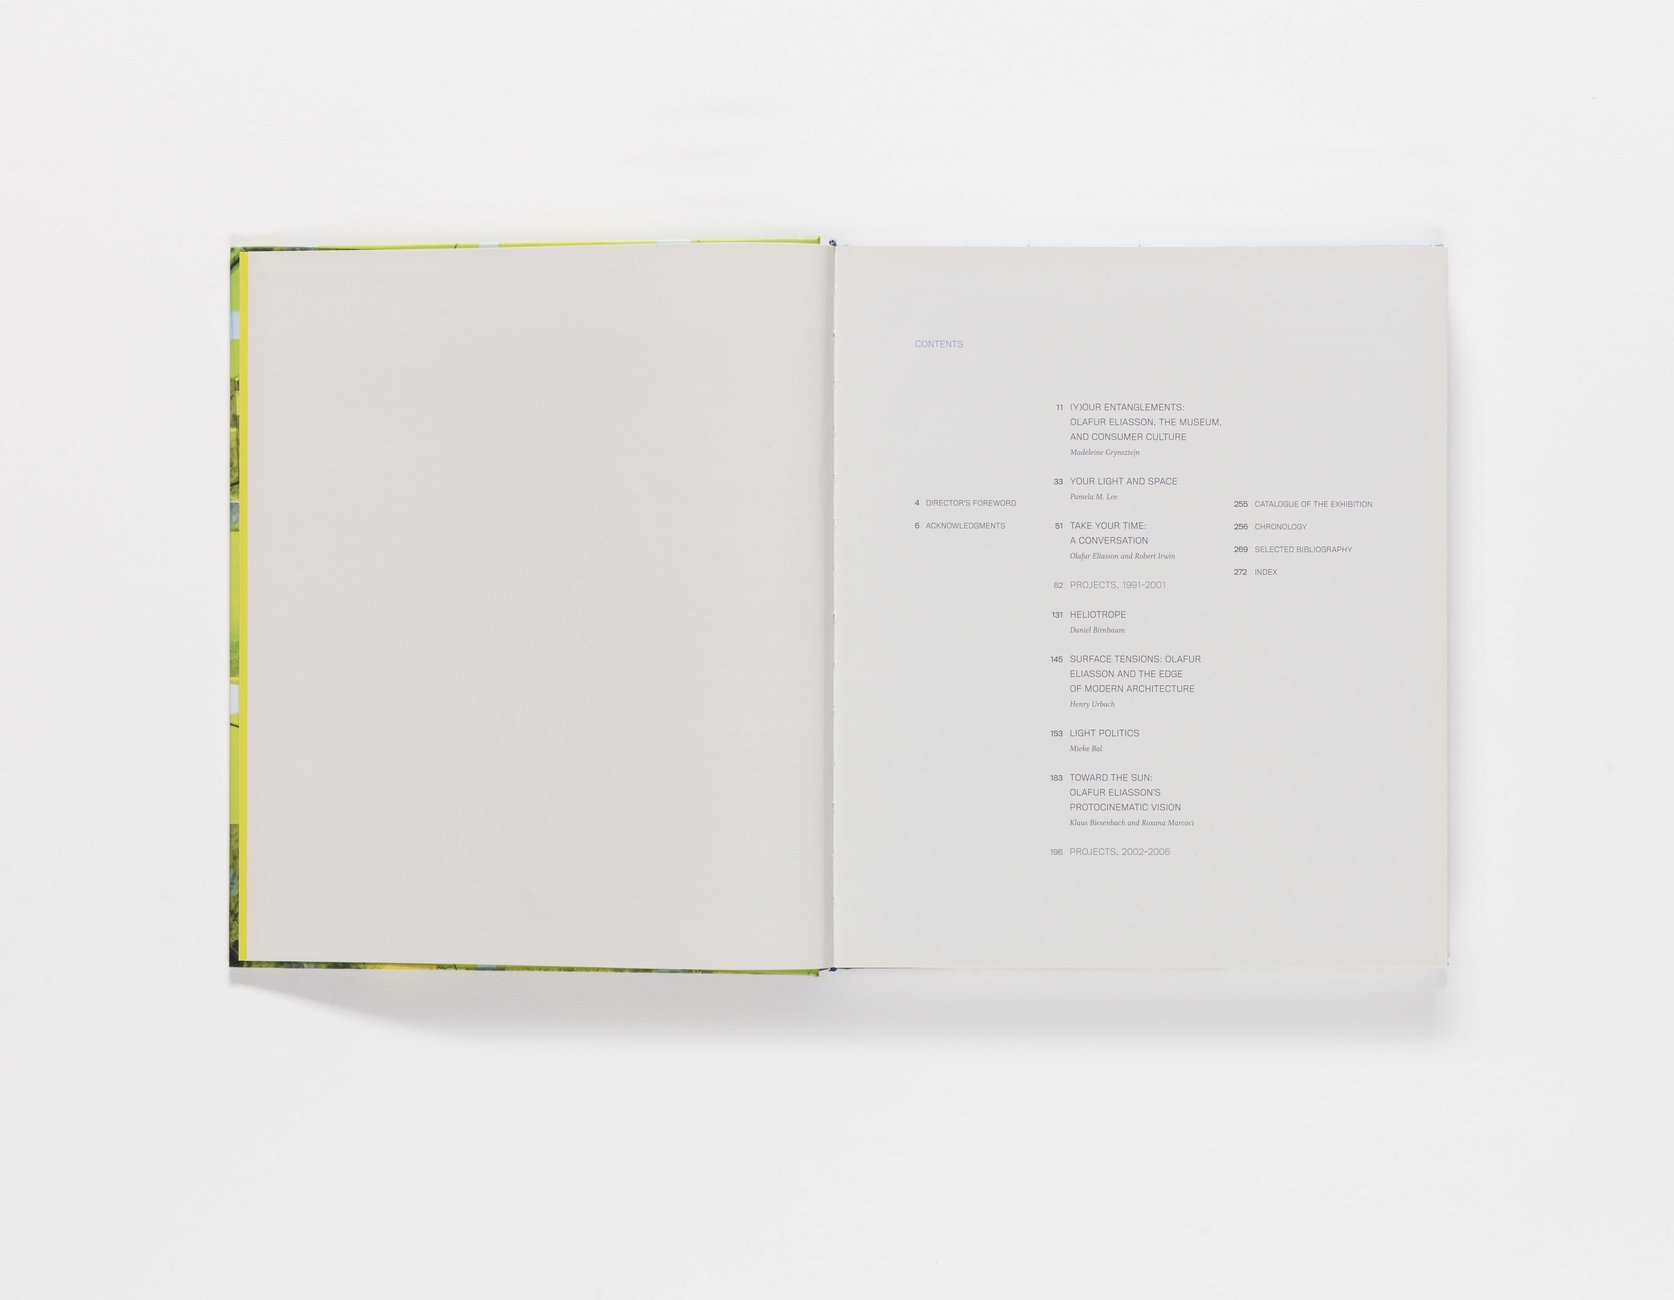 Take Your Time: Olafur Eliasson publication table of contents